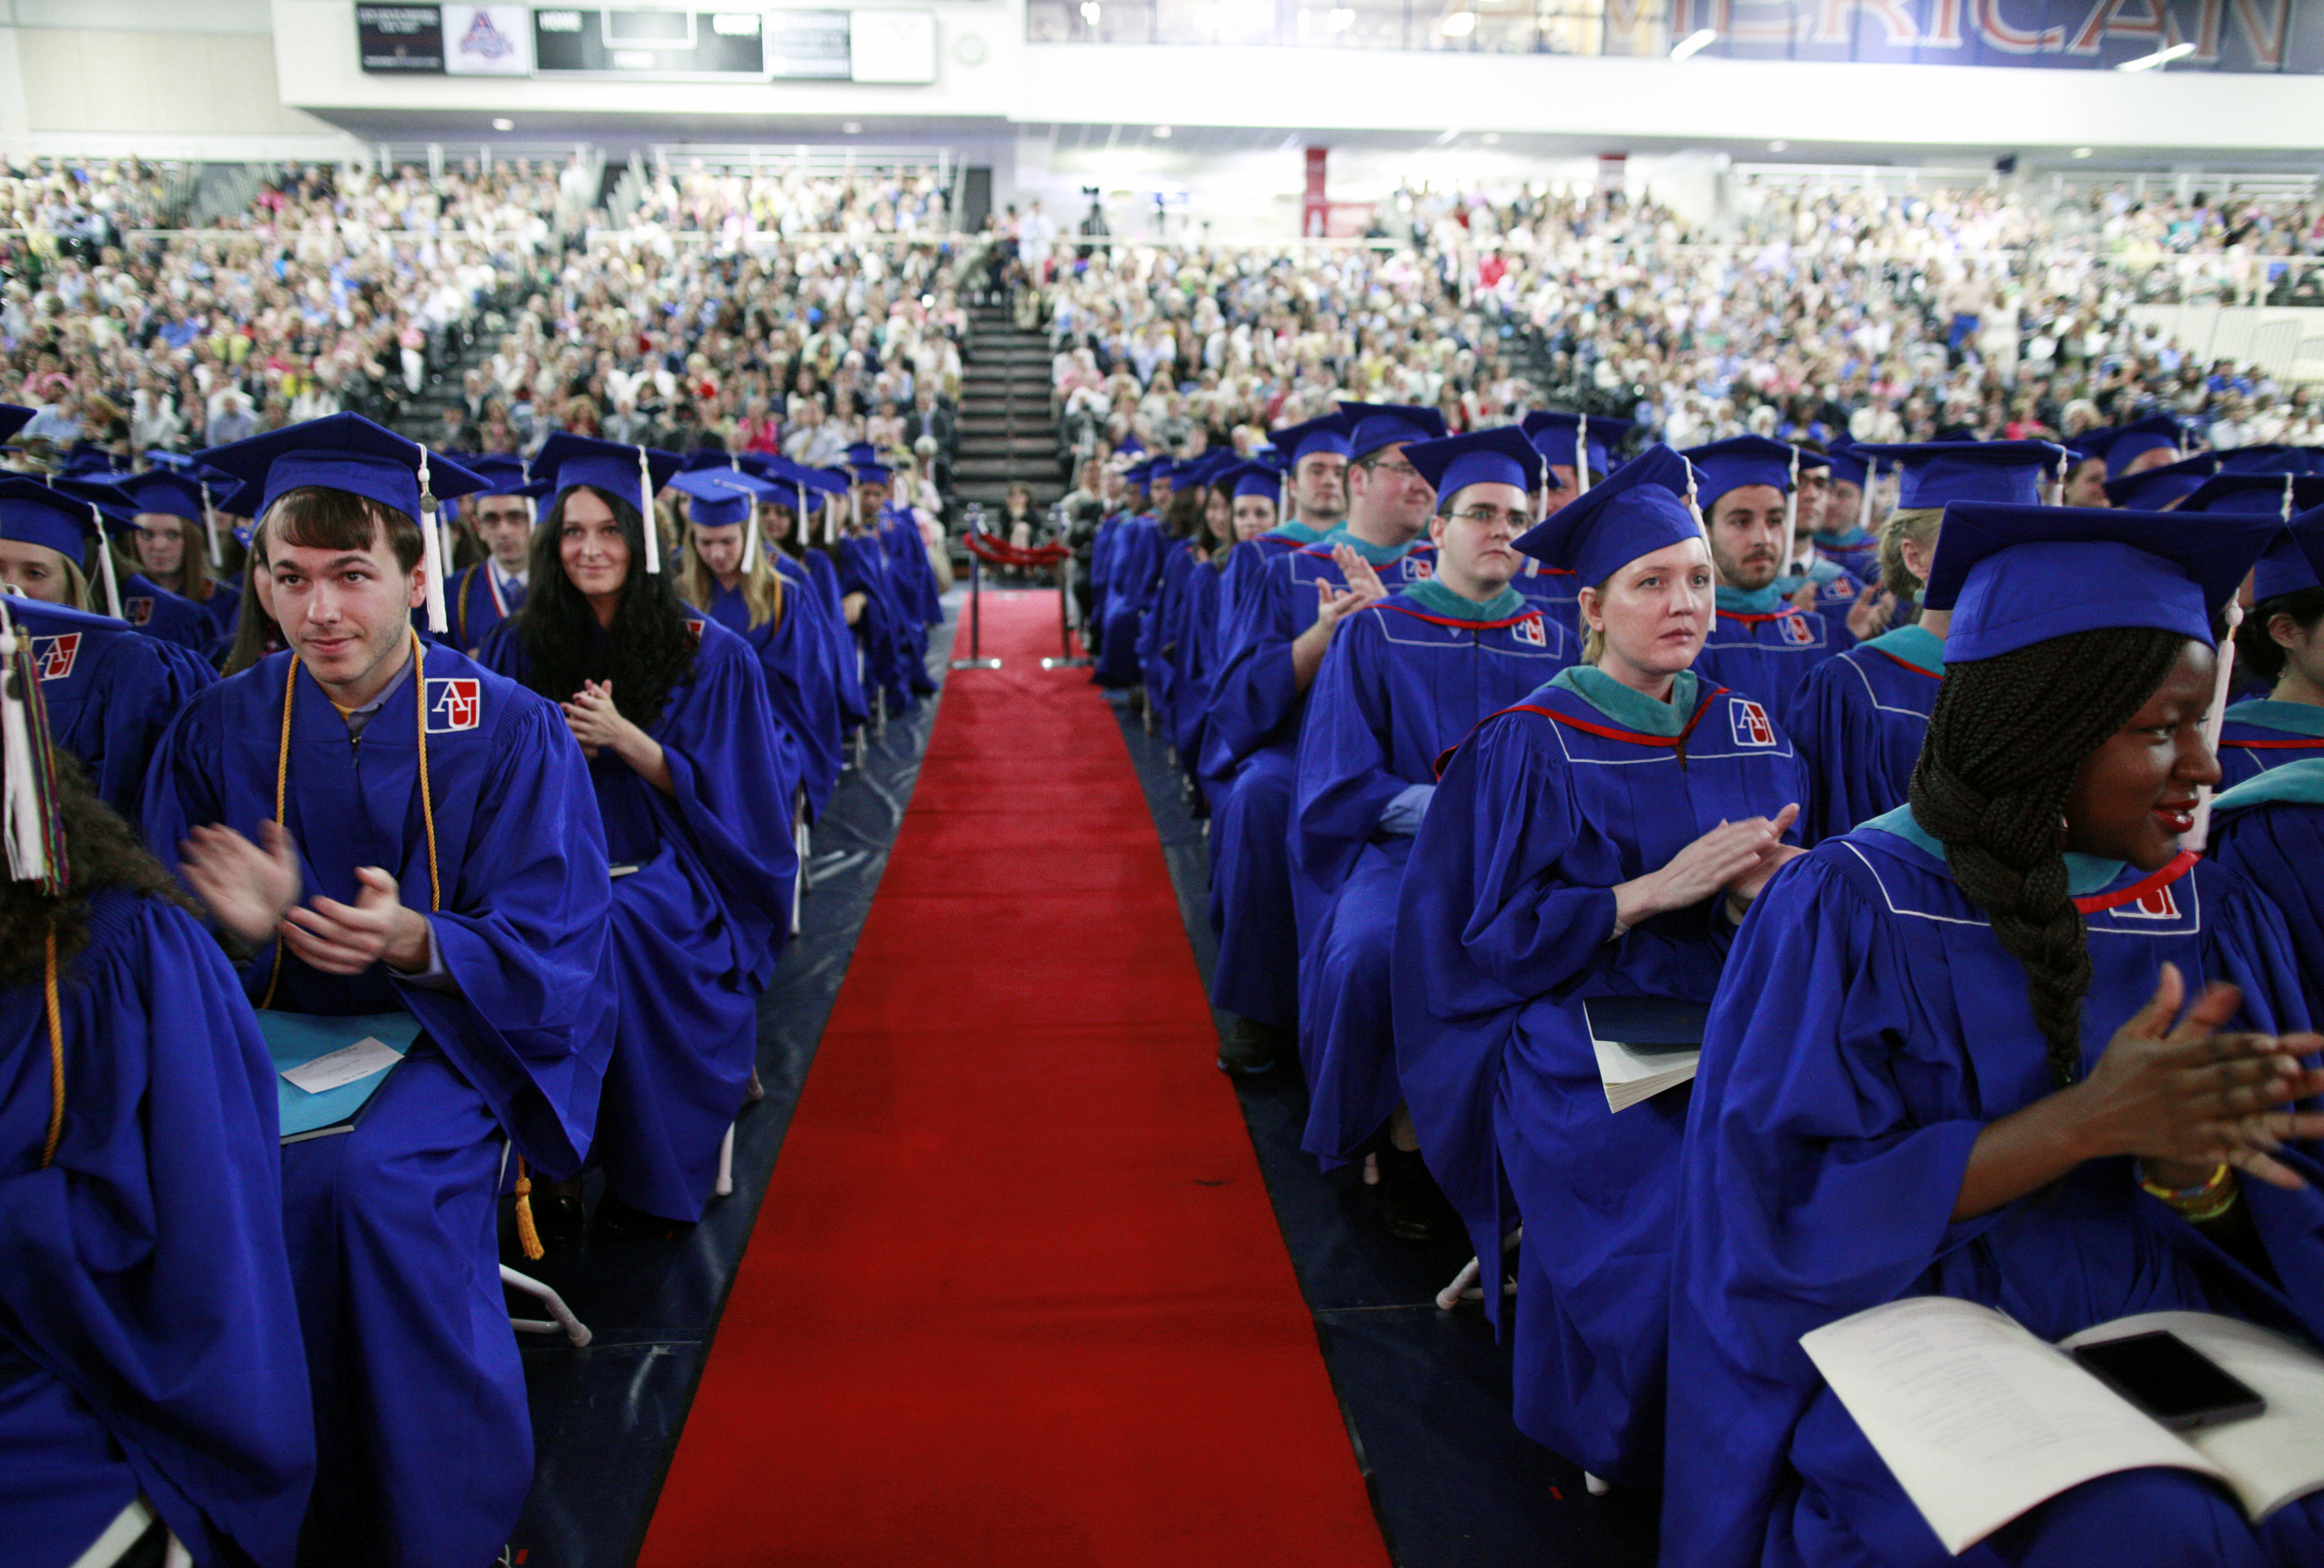 Master's Degrees Growing Faster Than Bachelor's Degrees